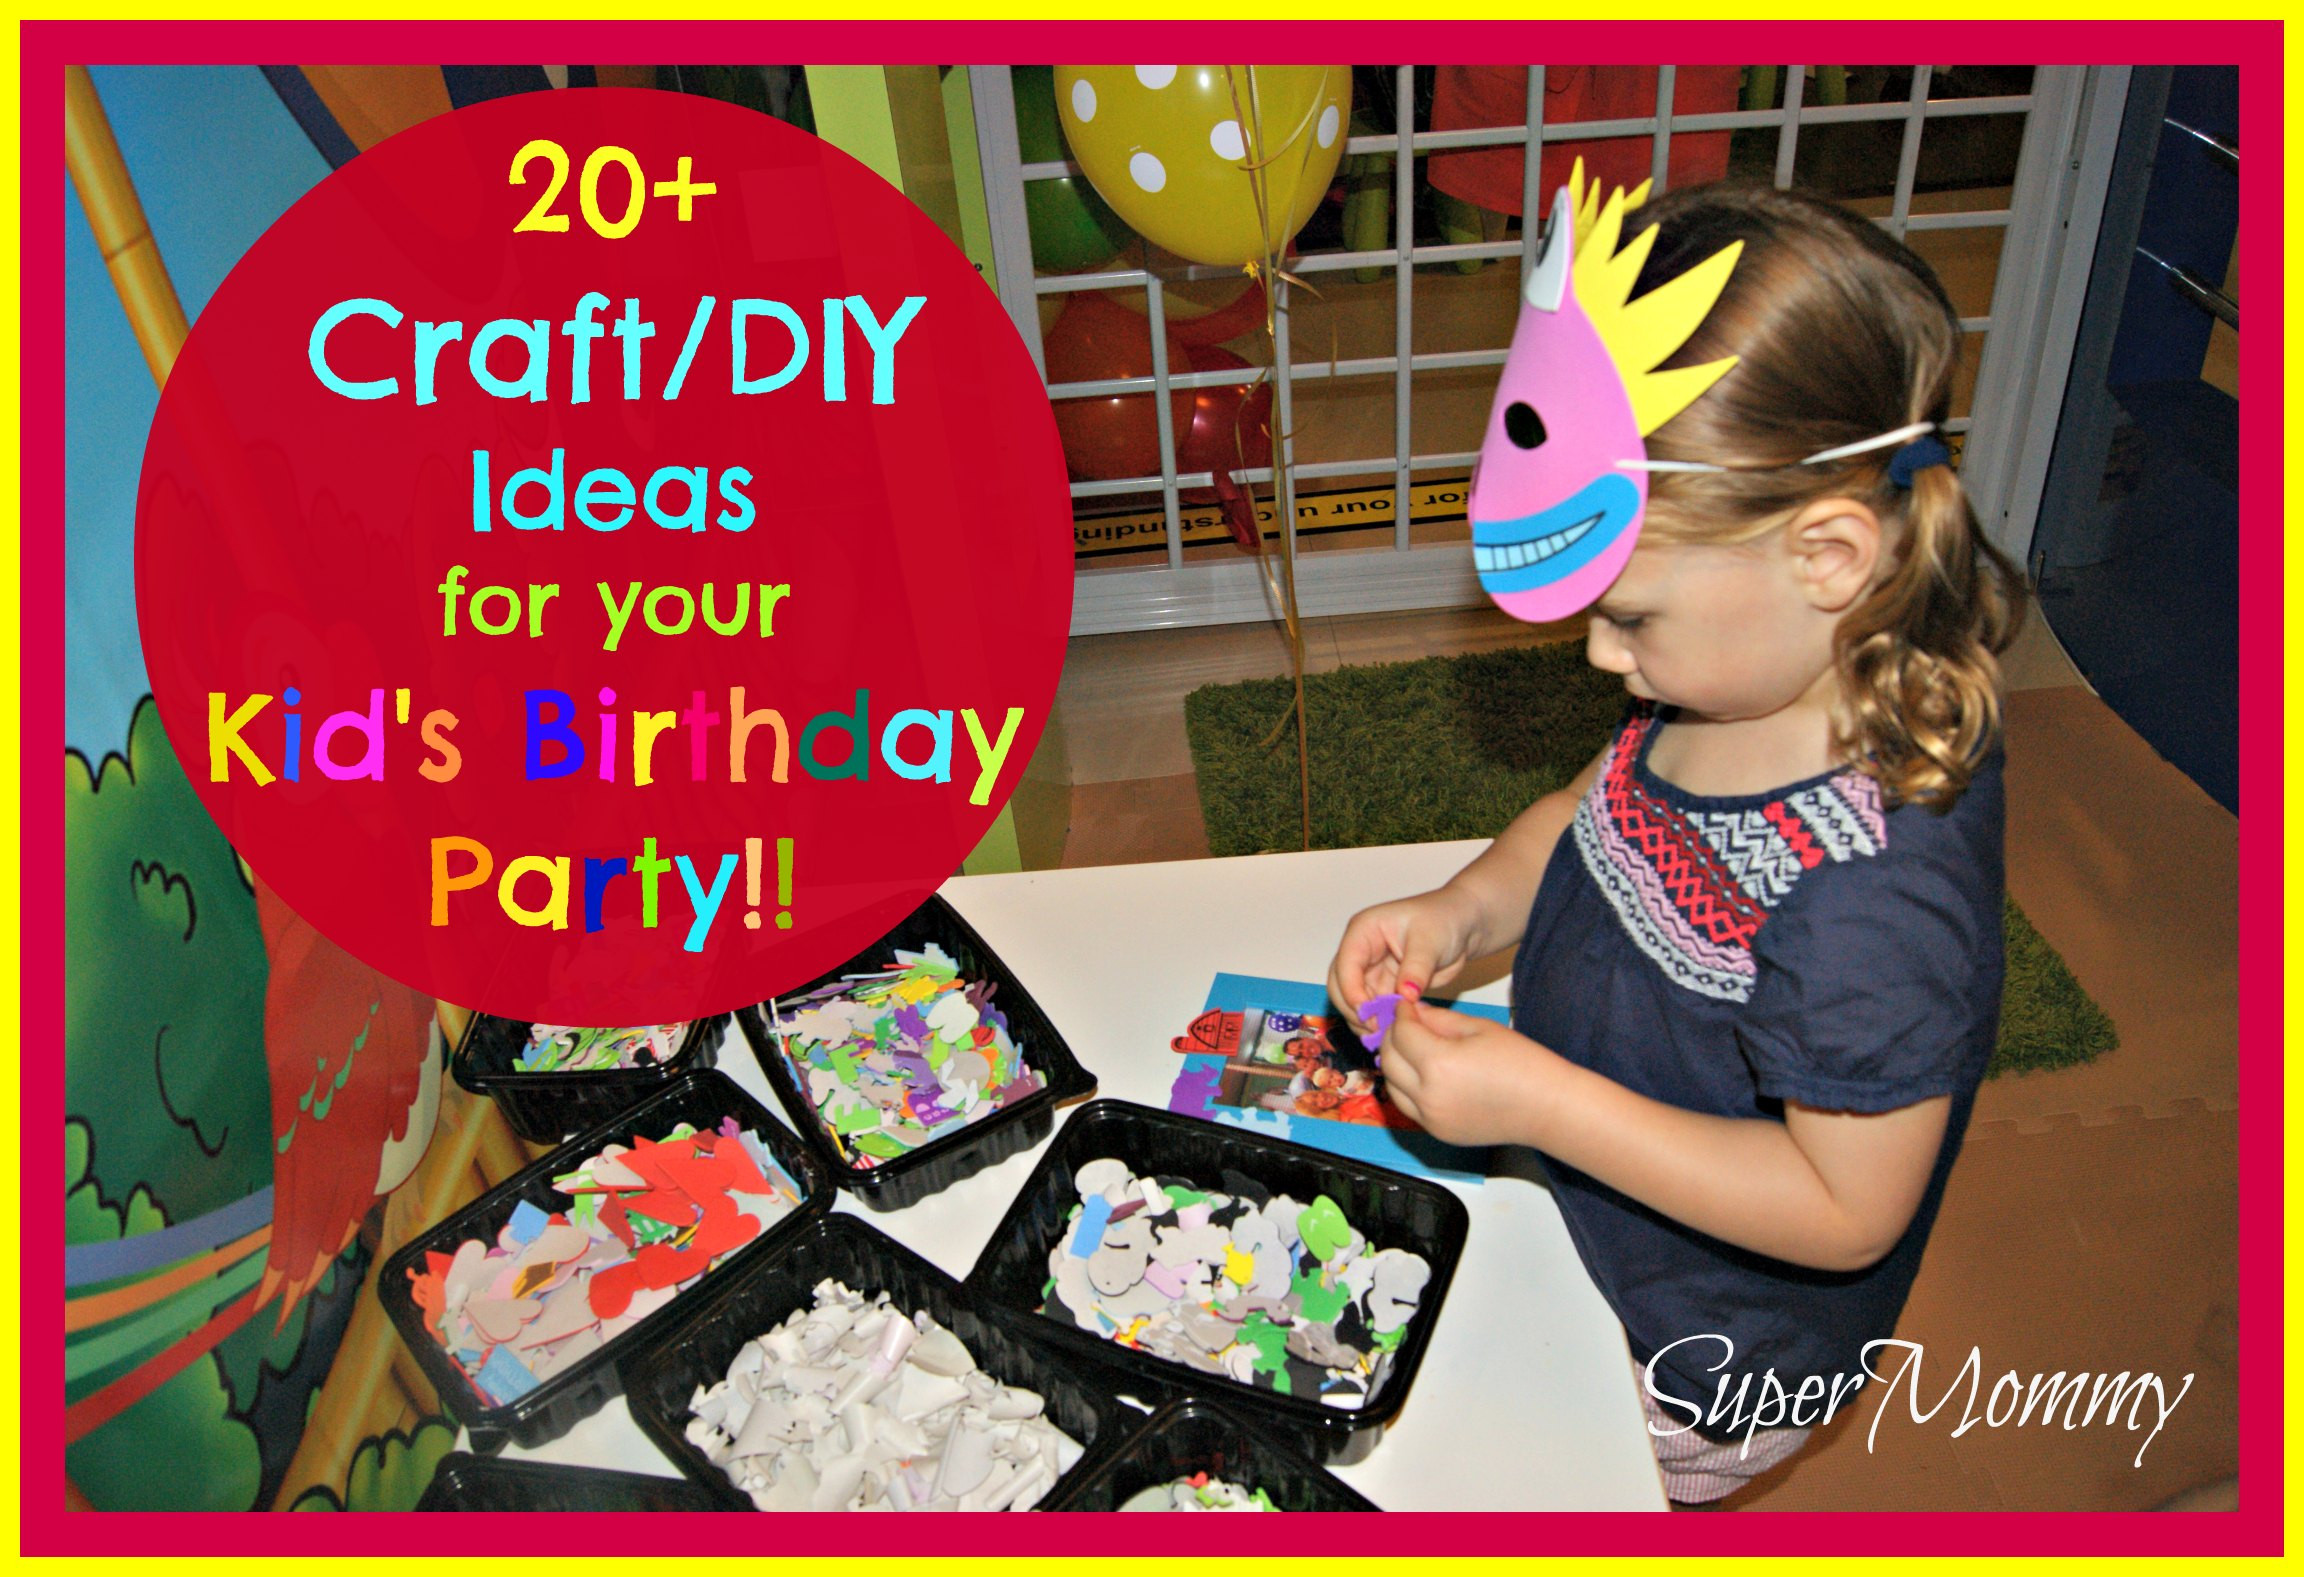 Birthday Party Crafts  20 DIY Craft Ideas for Your Kid s Birthday Party